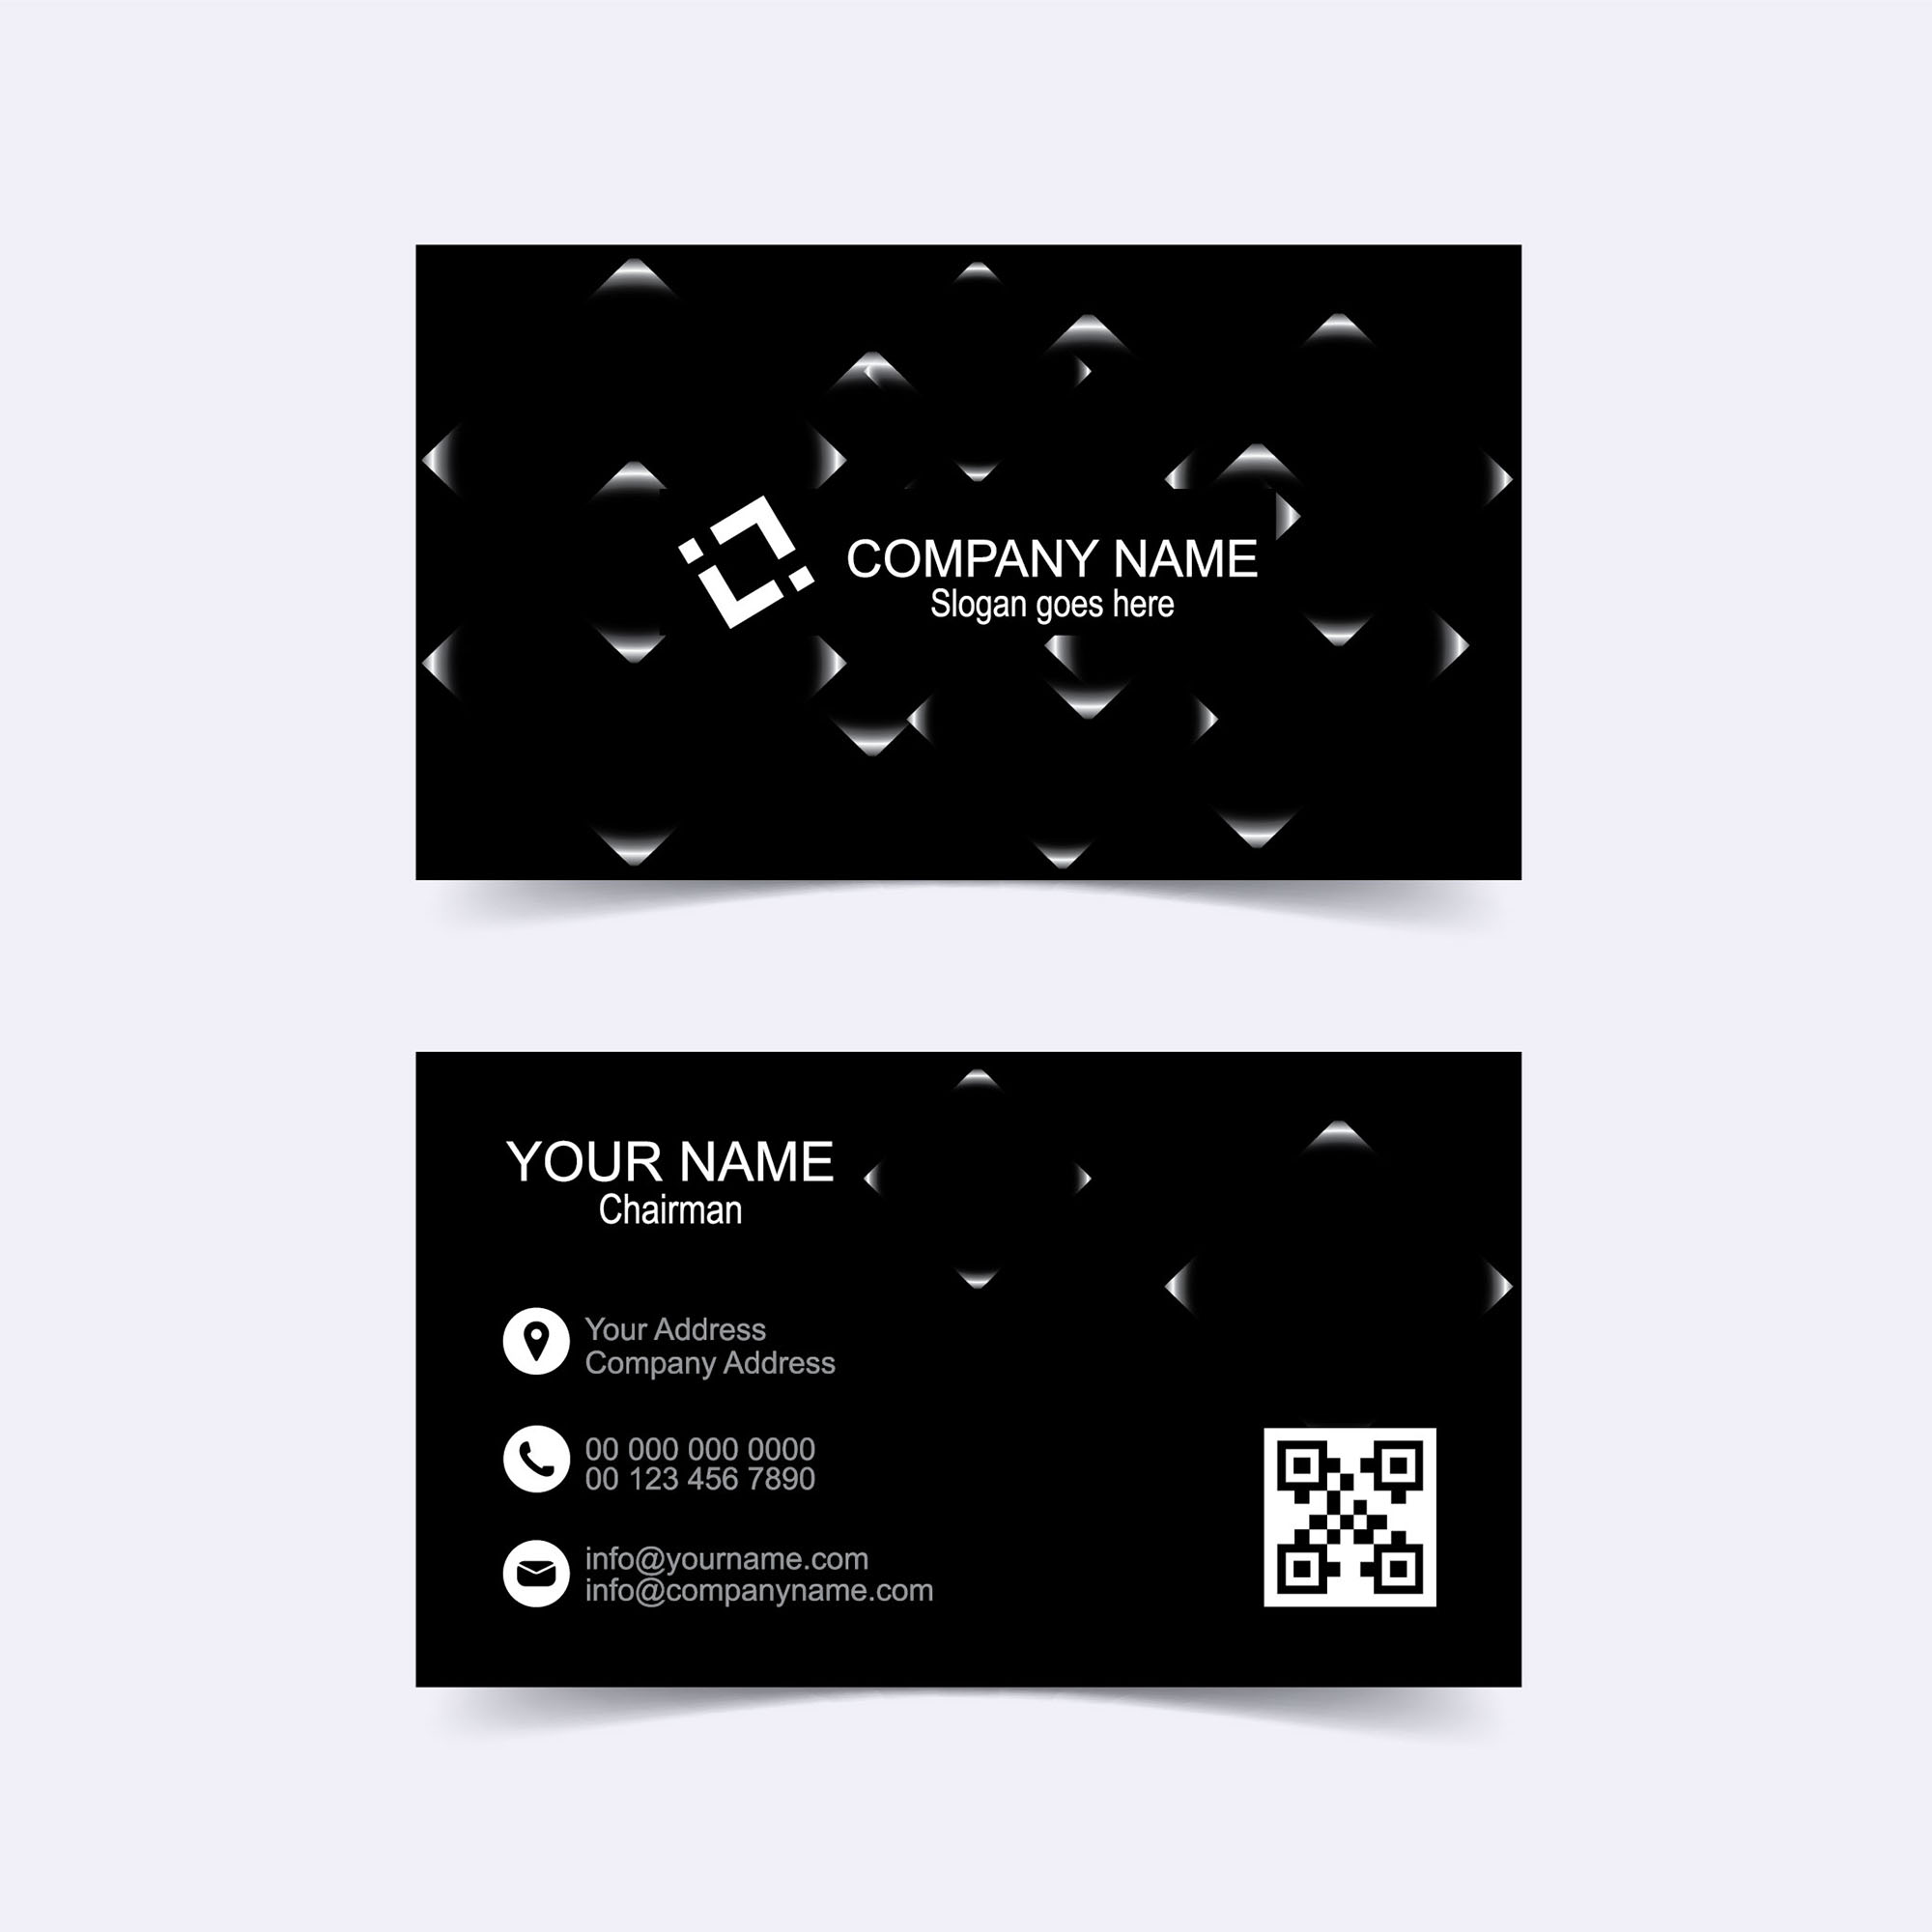 Black business card template free download wisxi business card business cards business card design business card template design templates fbccfo Image collections